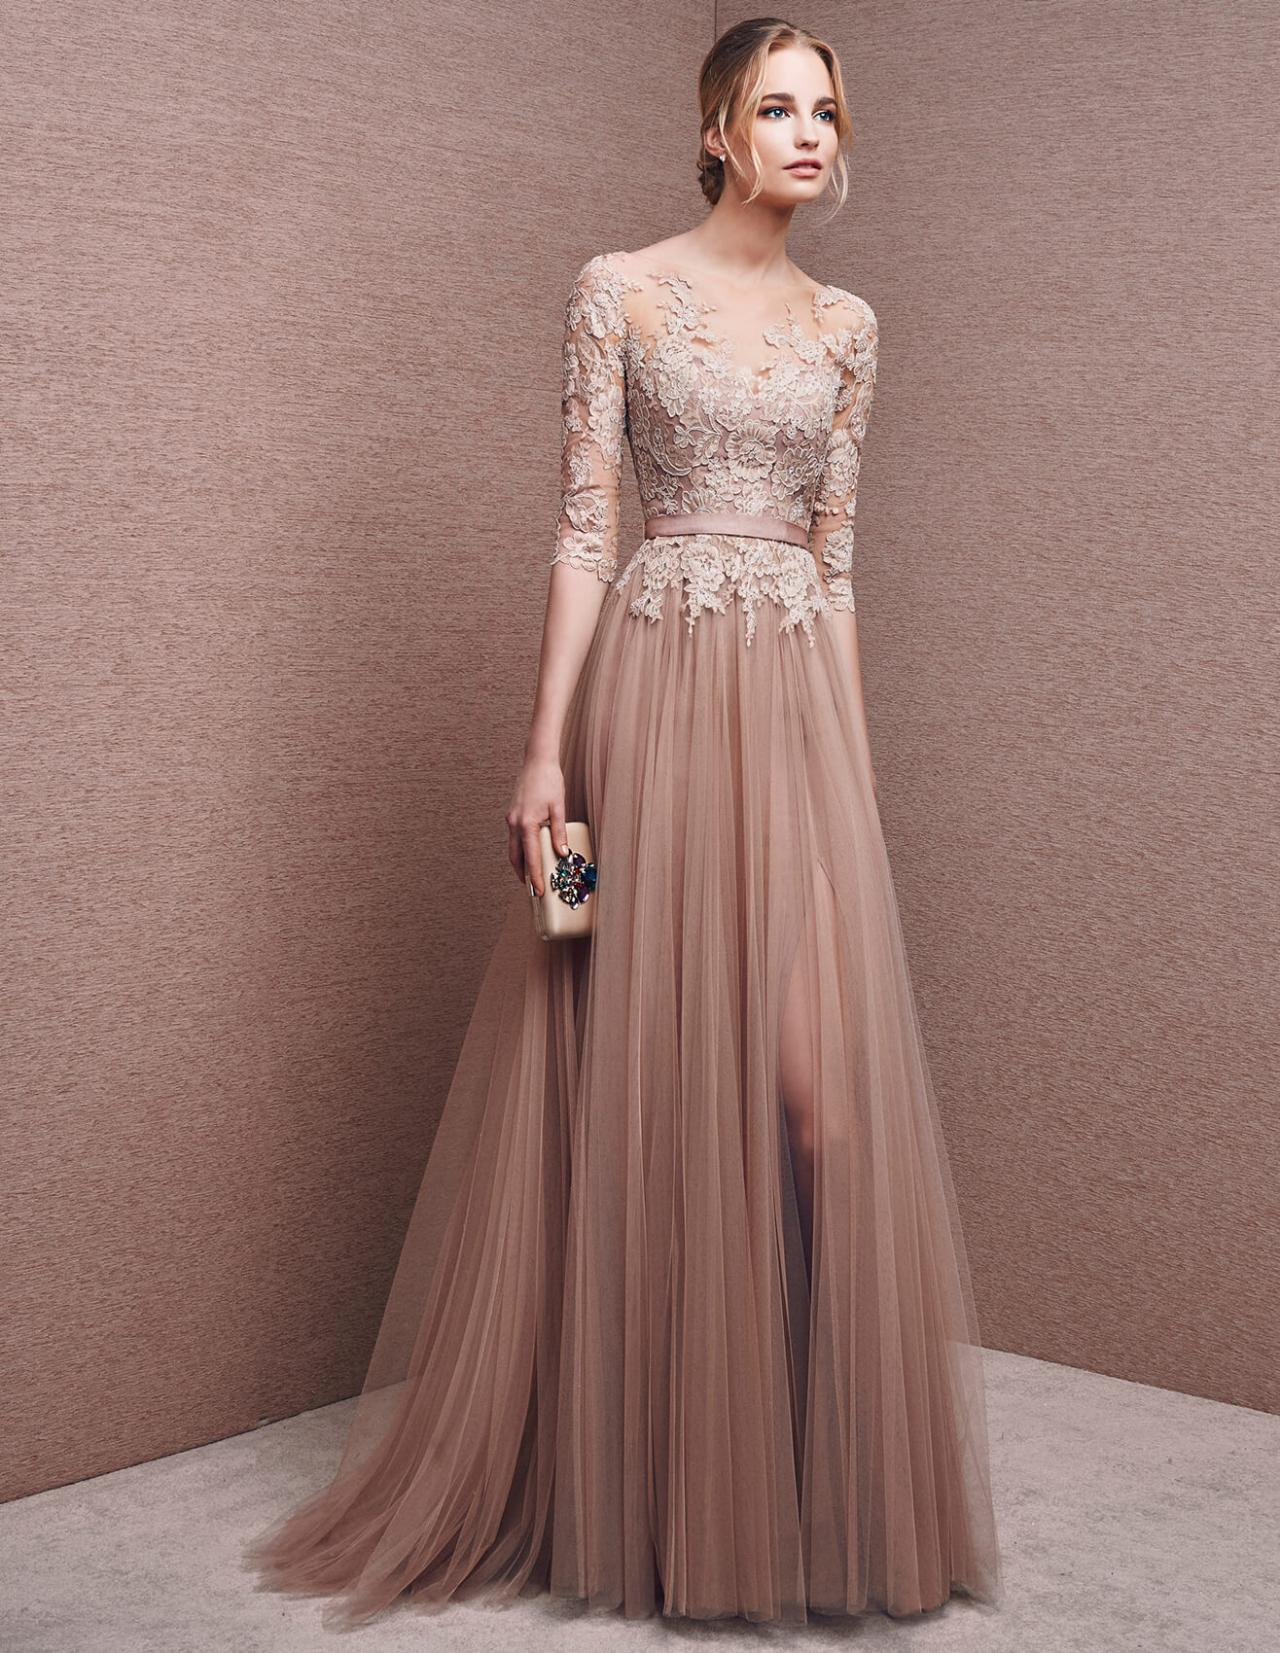 High Quality 3/4 Sleeves lace top Formal Evening Dresses Long Prom ...